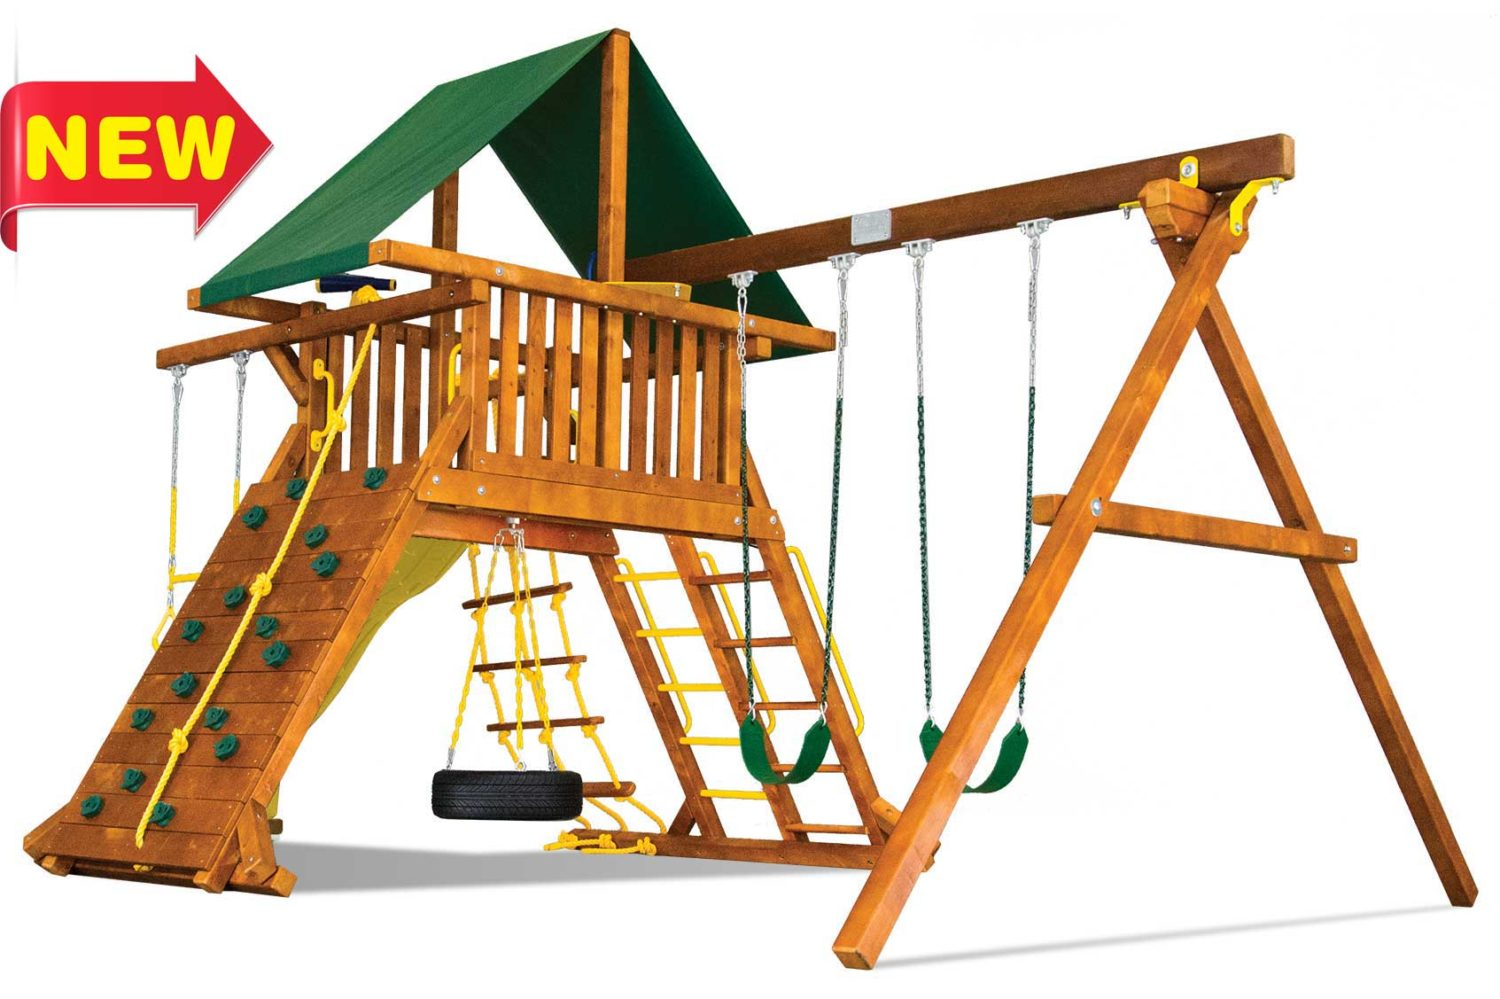 Circus Turbo Castle Pkg II Wooden Swing Set